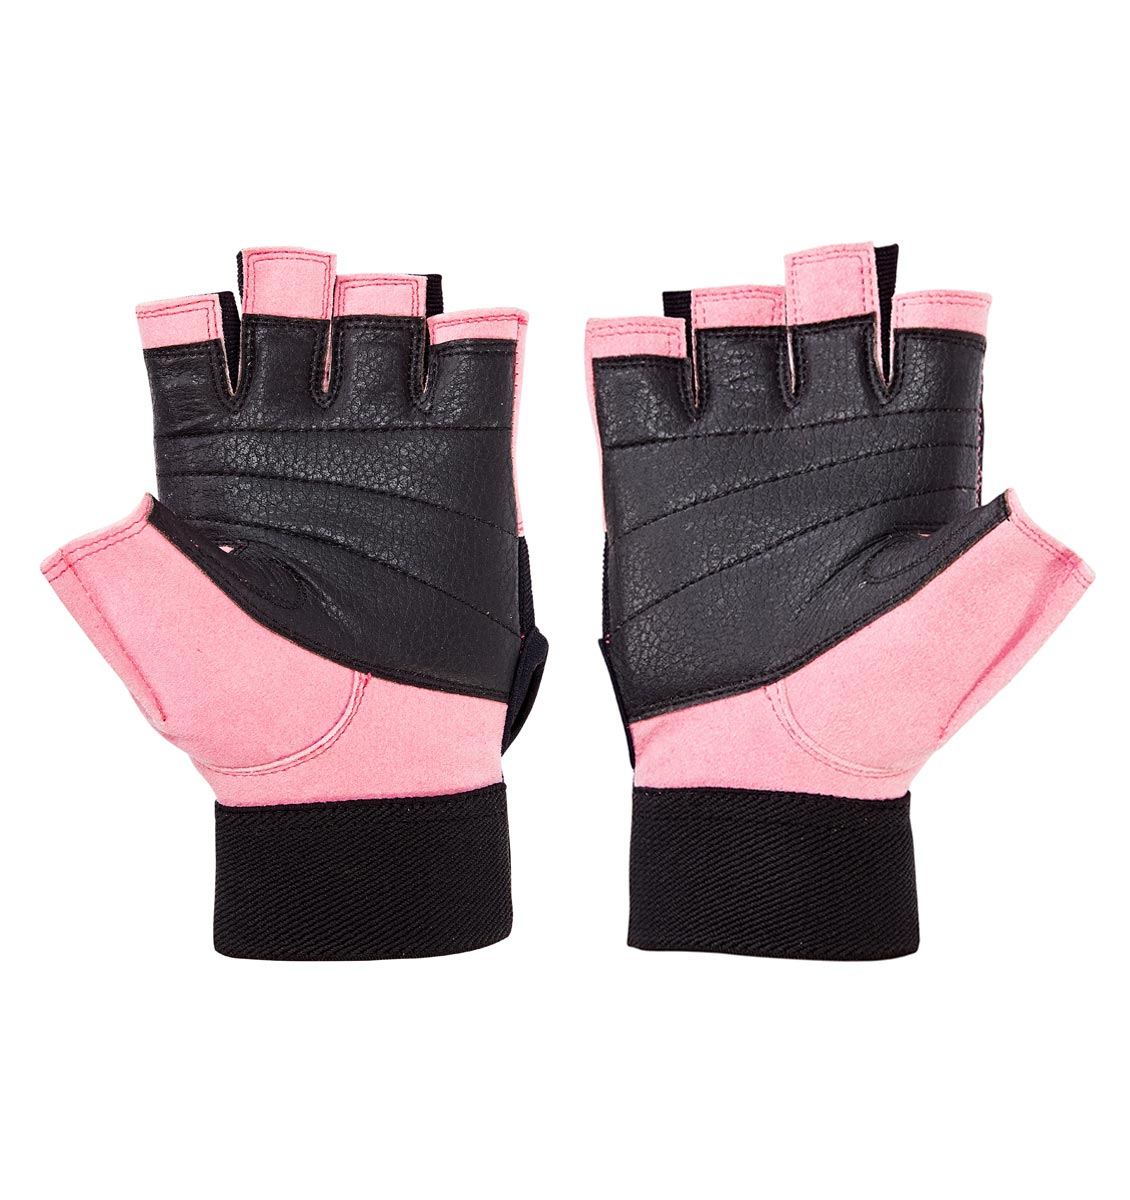 Schiek Lifting Gloves 520 Pink for Women Fitness Gym Workout Weightlifting